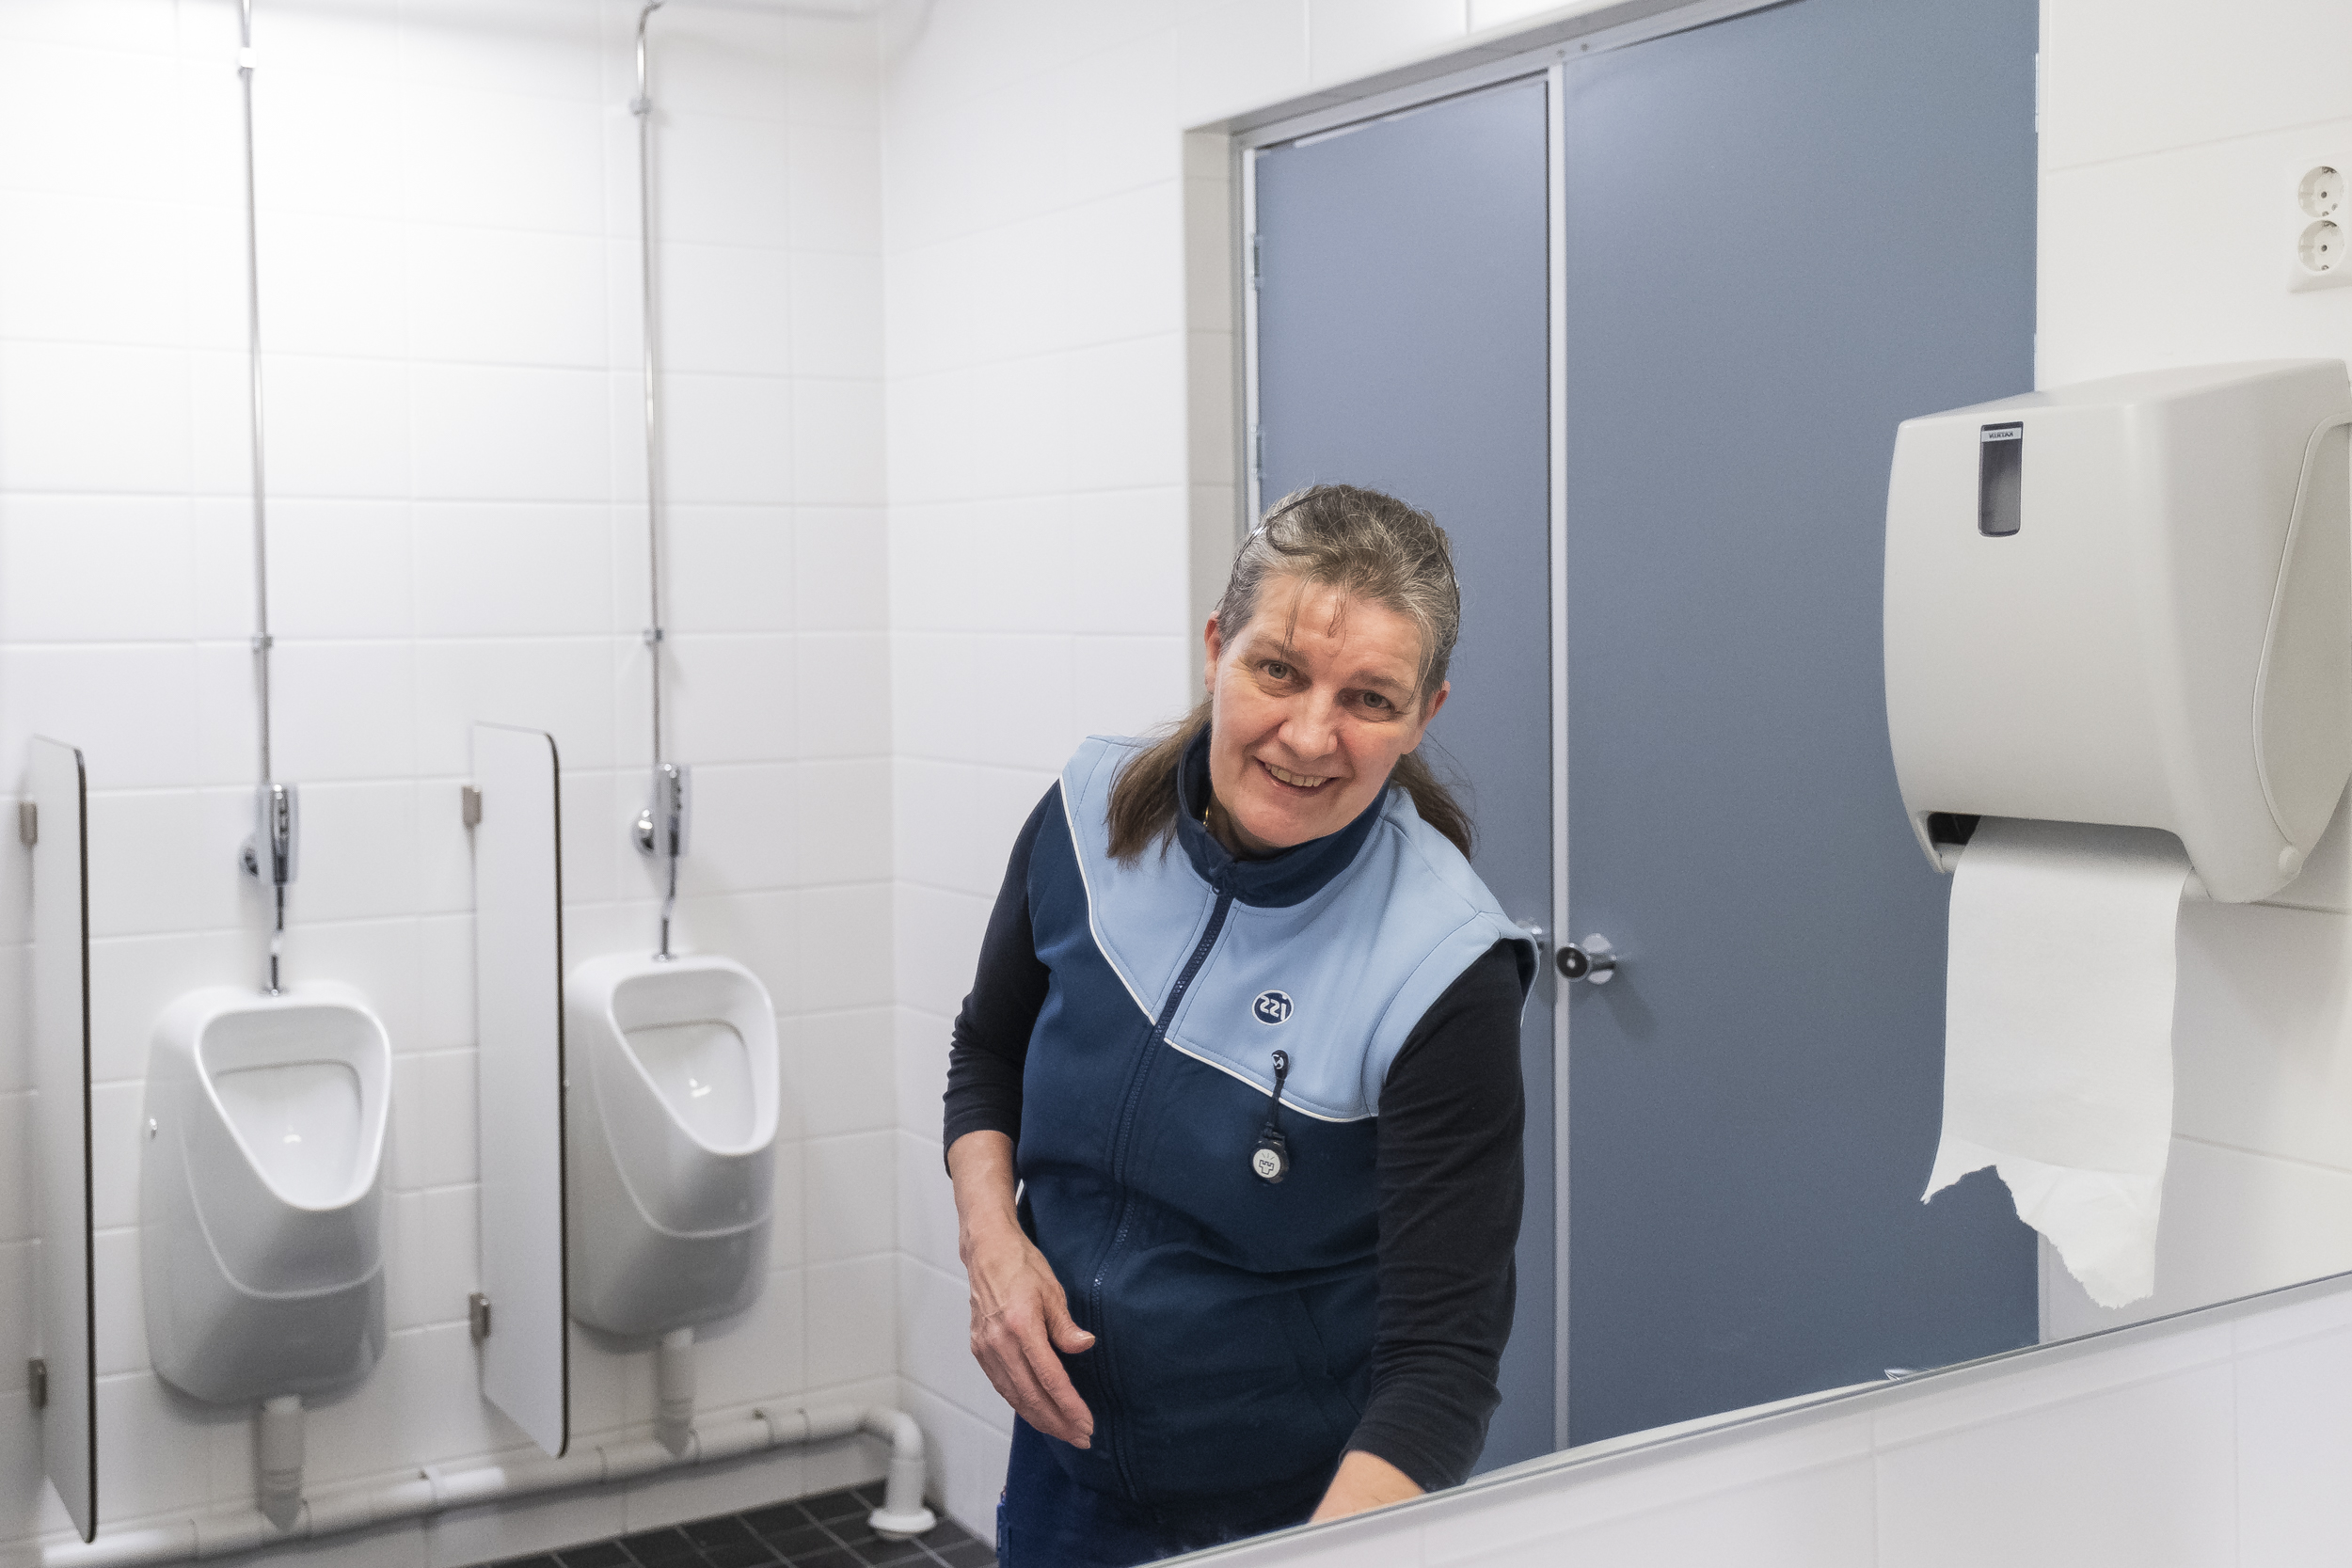 Shot for Oulun Ylioppilaslehti in January 2020. Pictured is a a clening lady in the campus bathroom of University of Oulu.